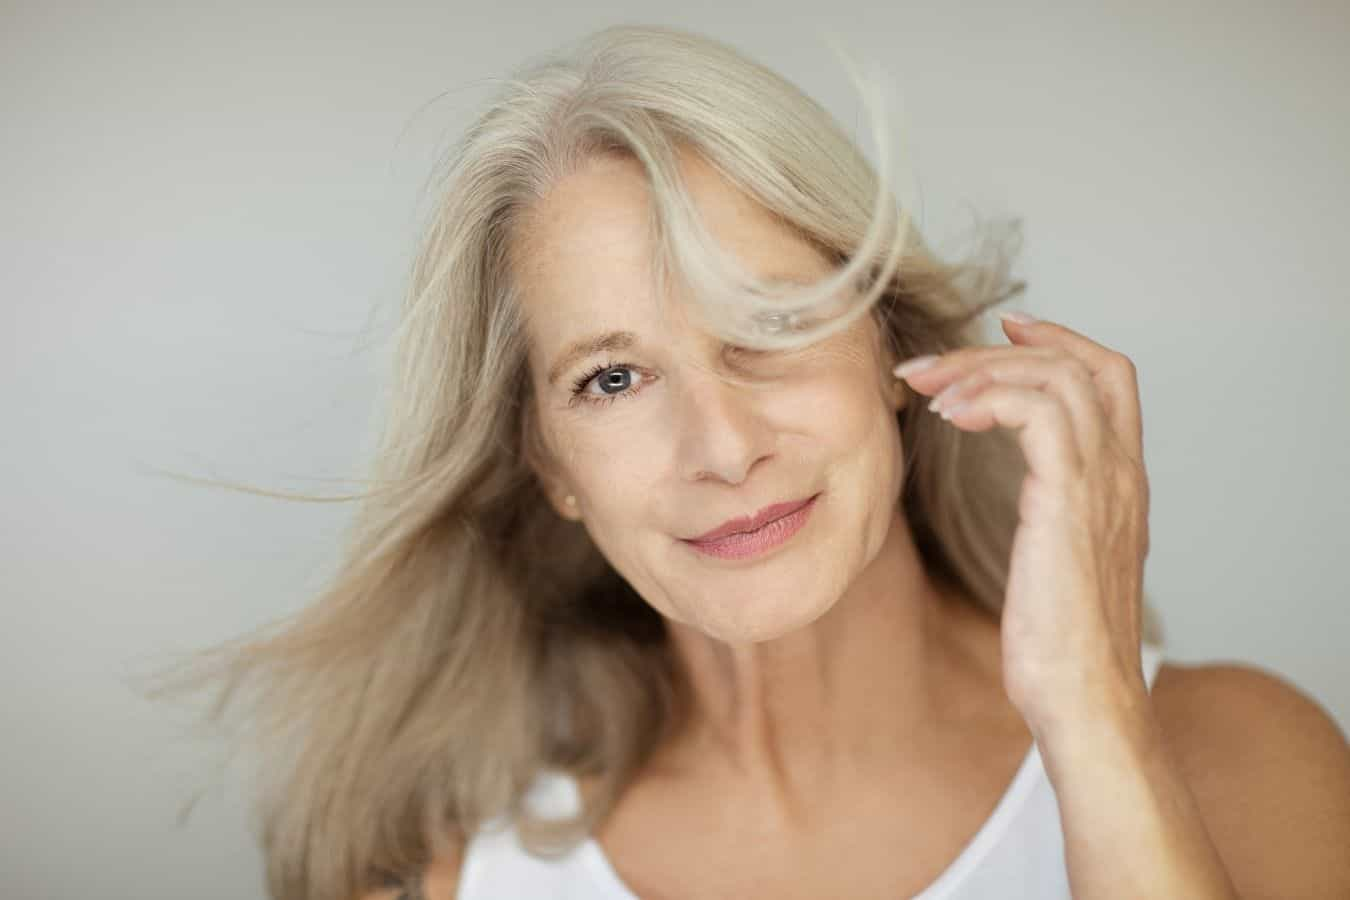 Shampoo And Conditioner For Menopausal Hair